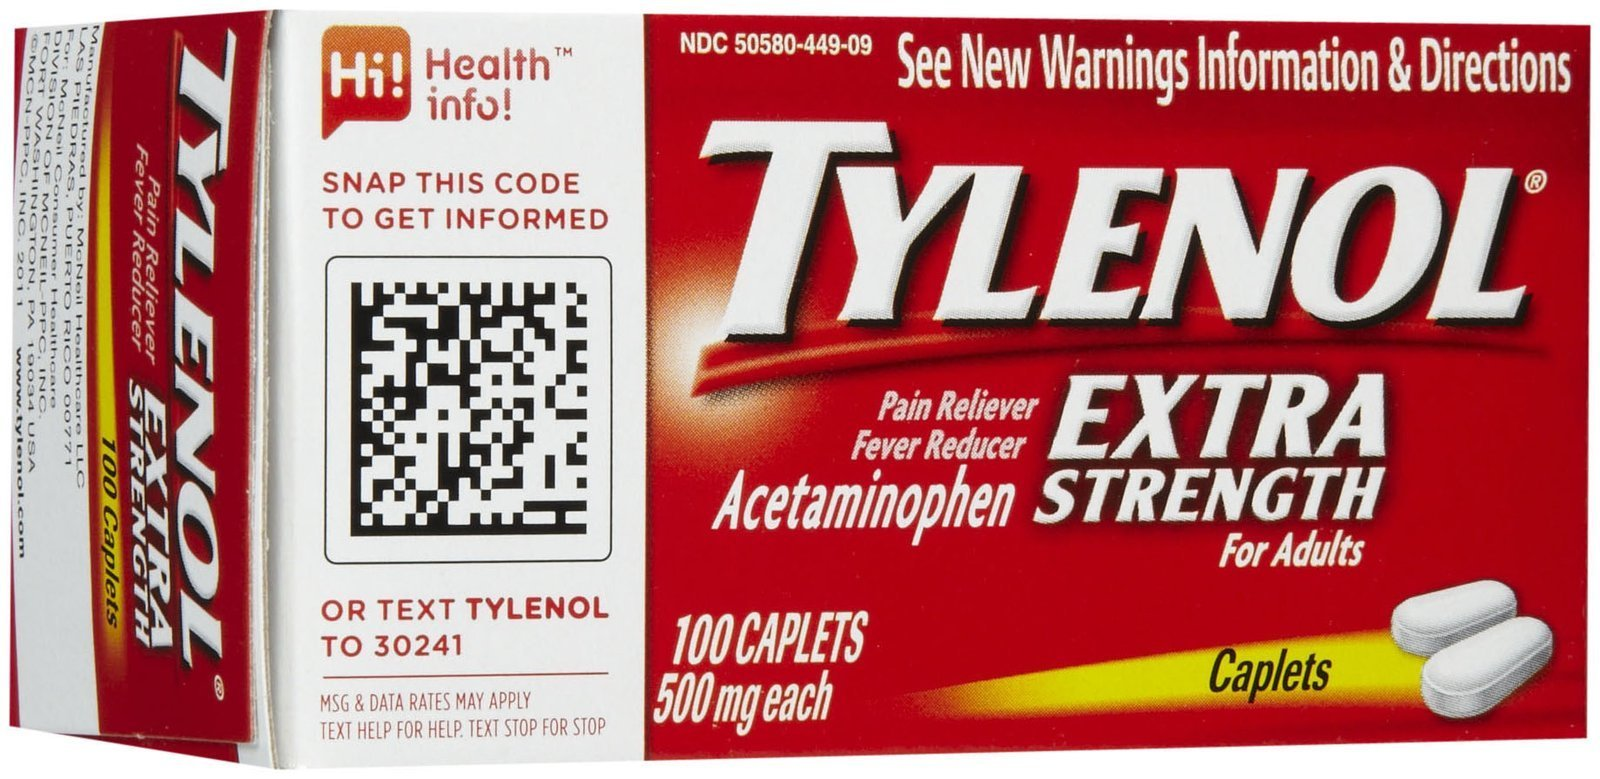 how to get high off tylenol 3